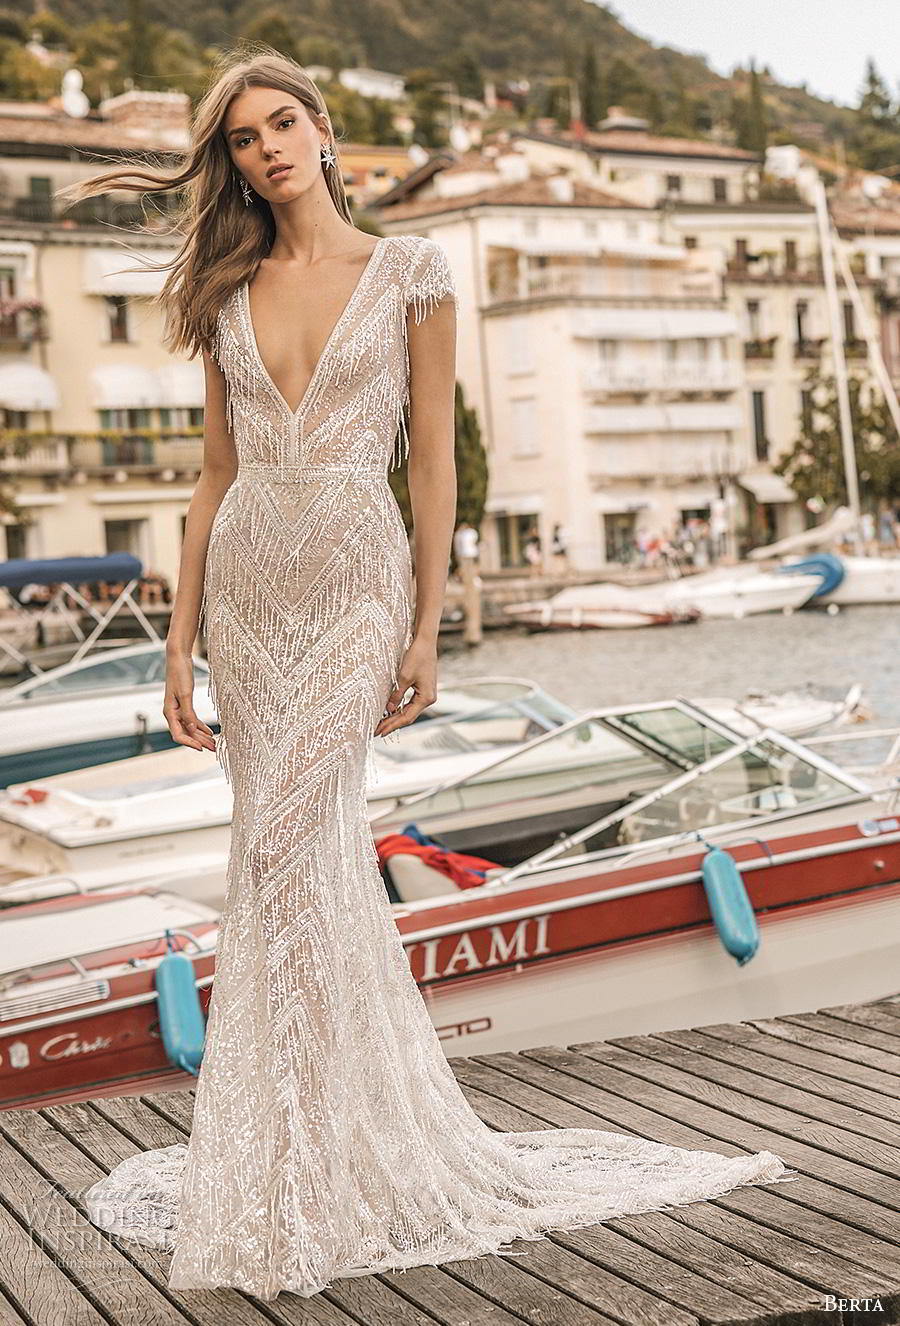 berta 2019 privee bridal cap sleeves deep v neck full embellishment glitzy elegant fit and flare wedding dress backless v back medium train (10) mv